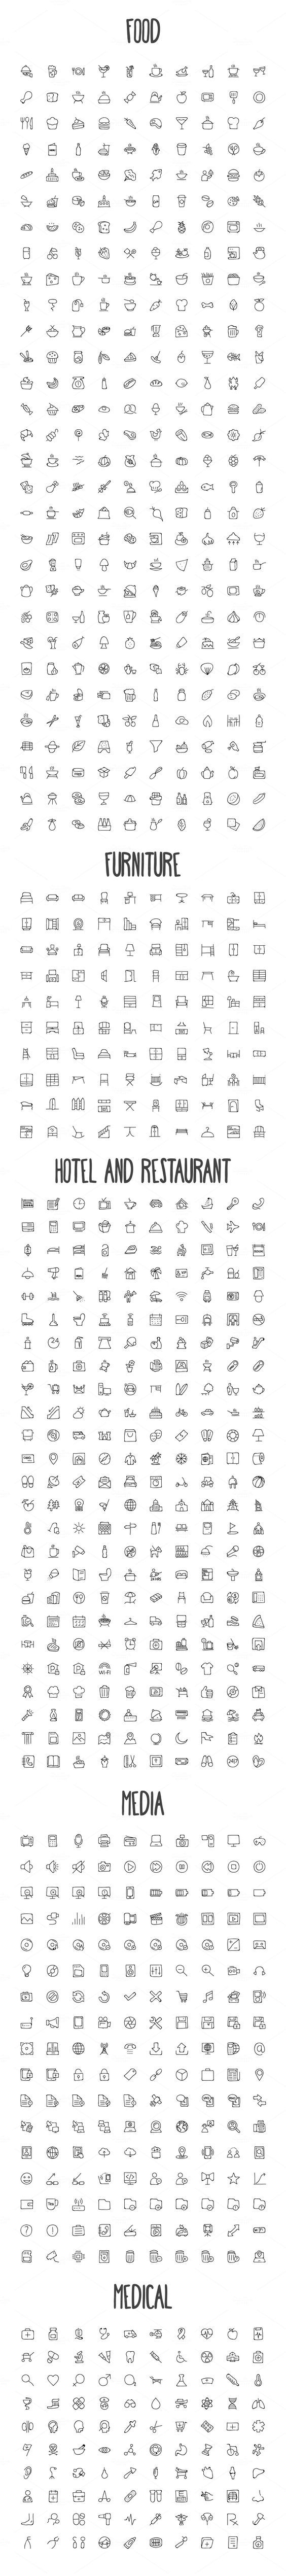 2440 Hand Drawn Doodle Icons Bundle - Icons - 3